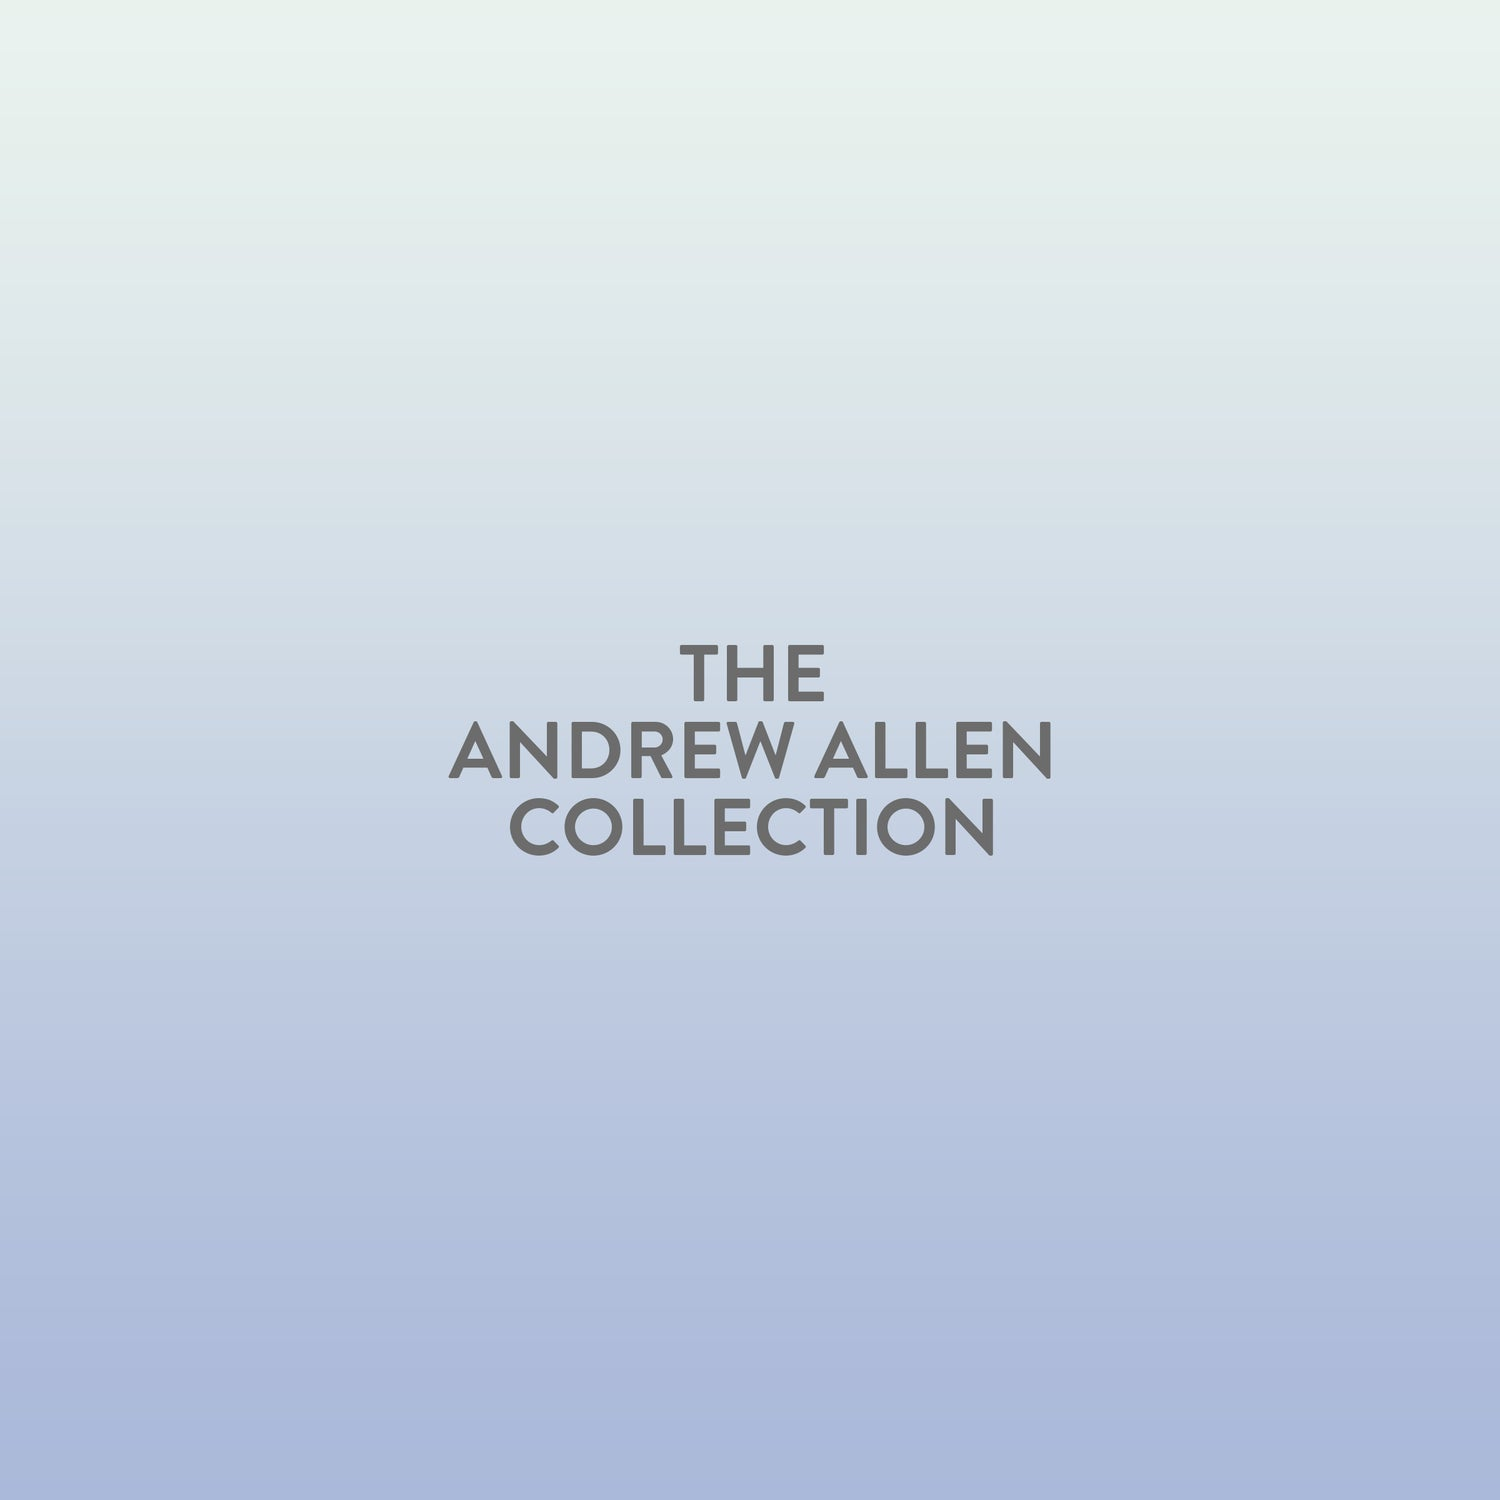 Image of The Andrew Allen Collection